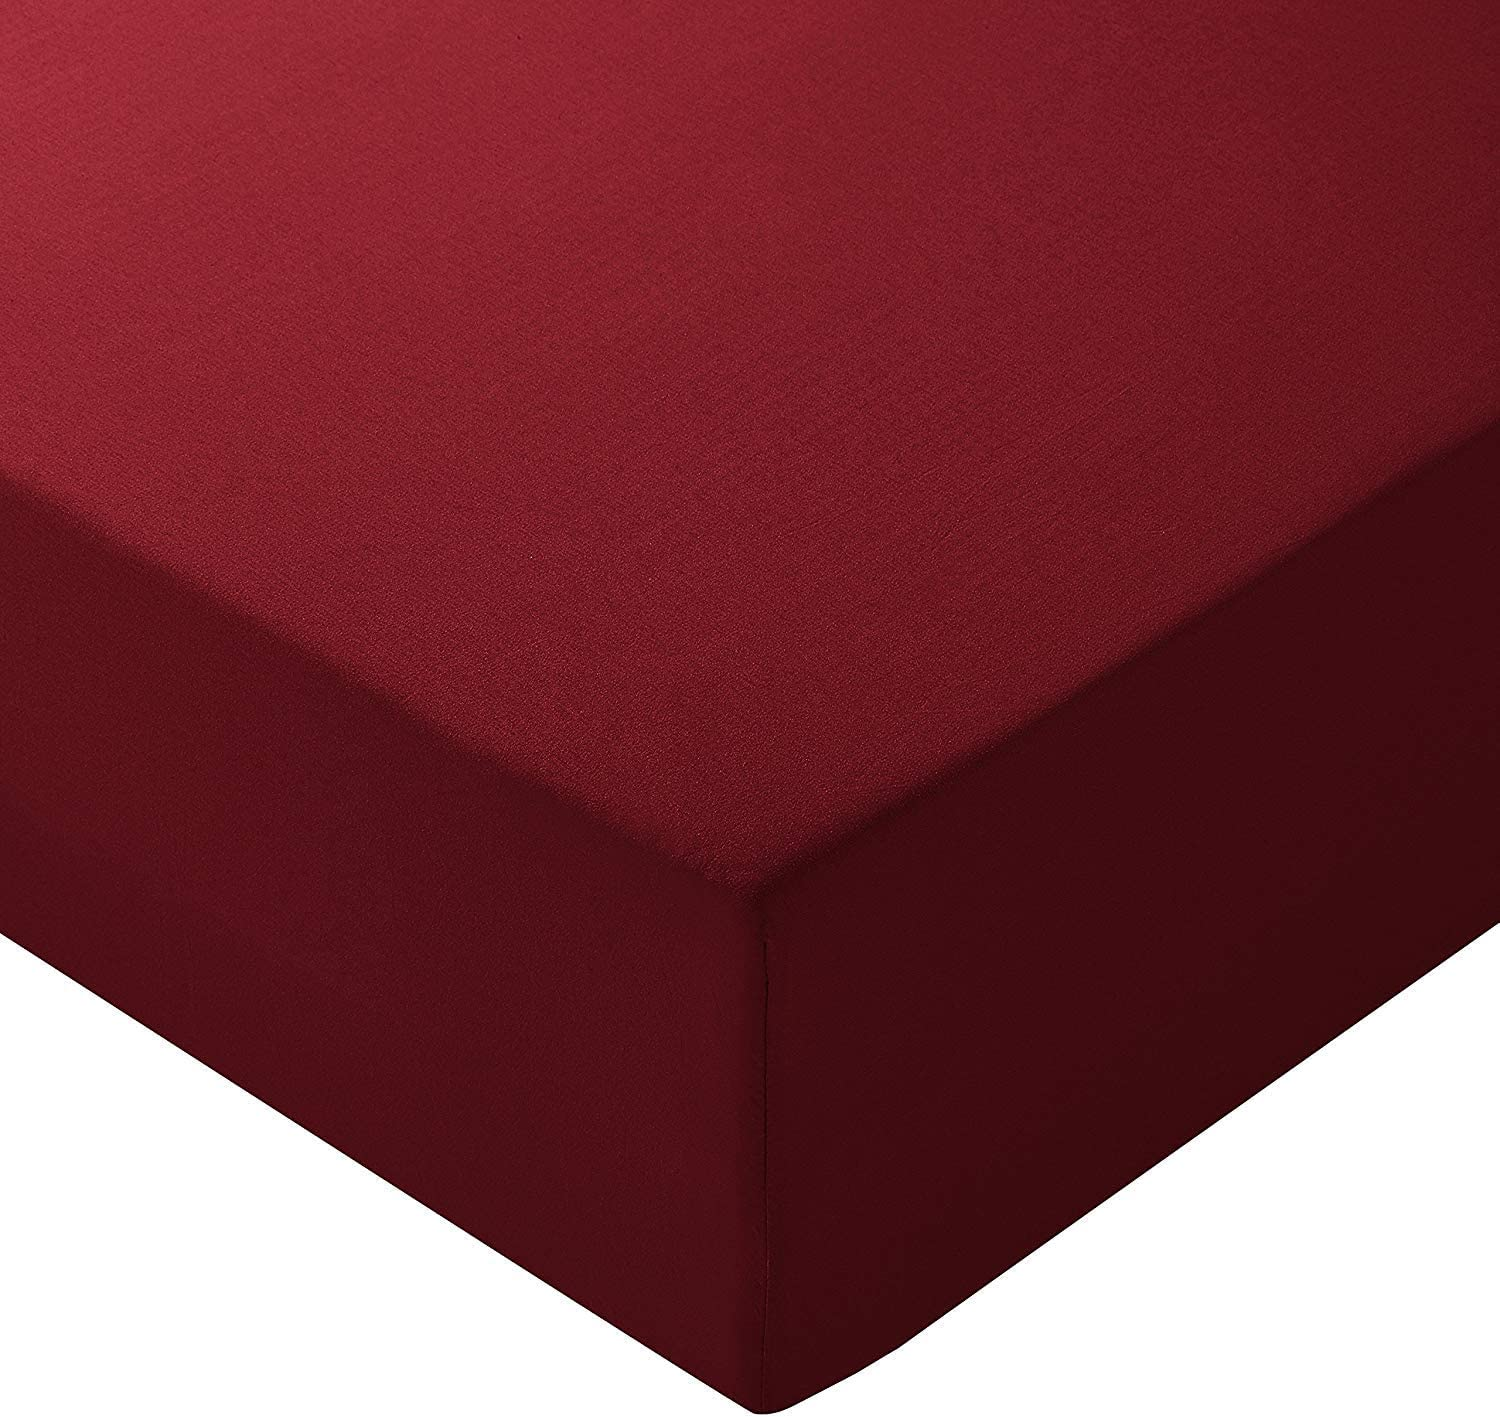 """Ras Decor Linen Fitted Sheets California King, Burgundy Solid 100% Cotton 400 Thread Count Fitted Bottom Sheet Only, with Elastic All Around - Fits Mattress Upto 14"""" to 16"""" Inch Extra Deep Pocket"""